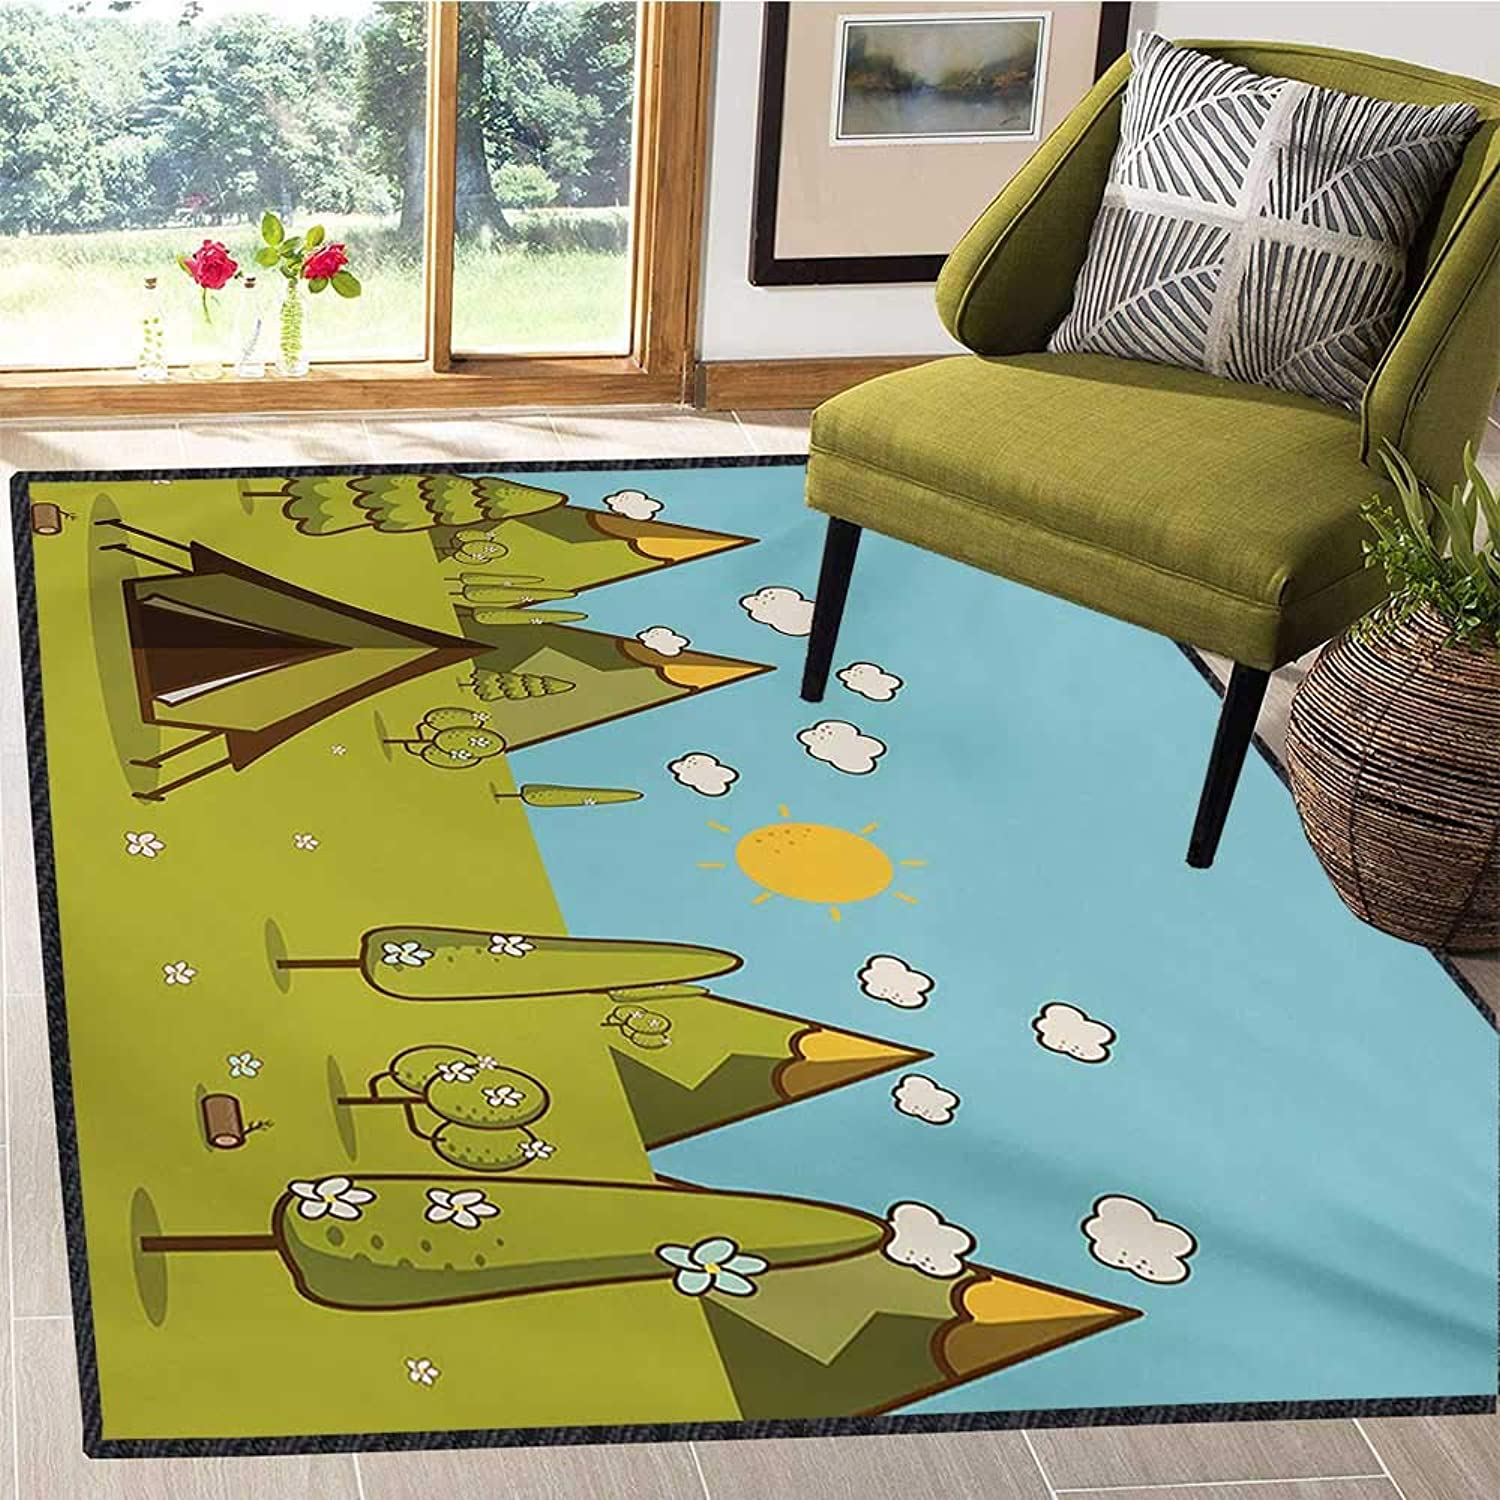 Camping, Door Mats for Inside, Solitary Weekend Theme Summer Morning Landscape in The Mountains Cartoon Image, Door Mat Indoors 5x6 Ft Multicolor